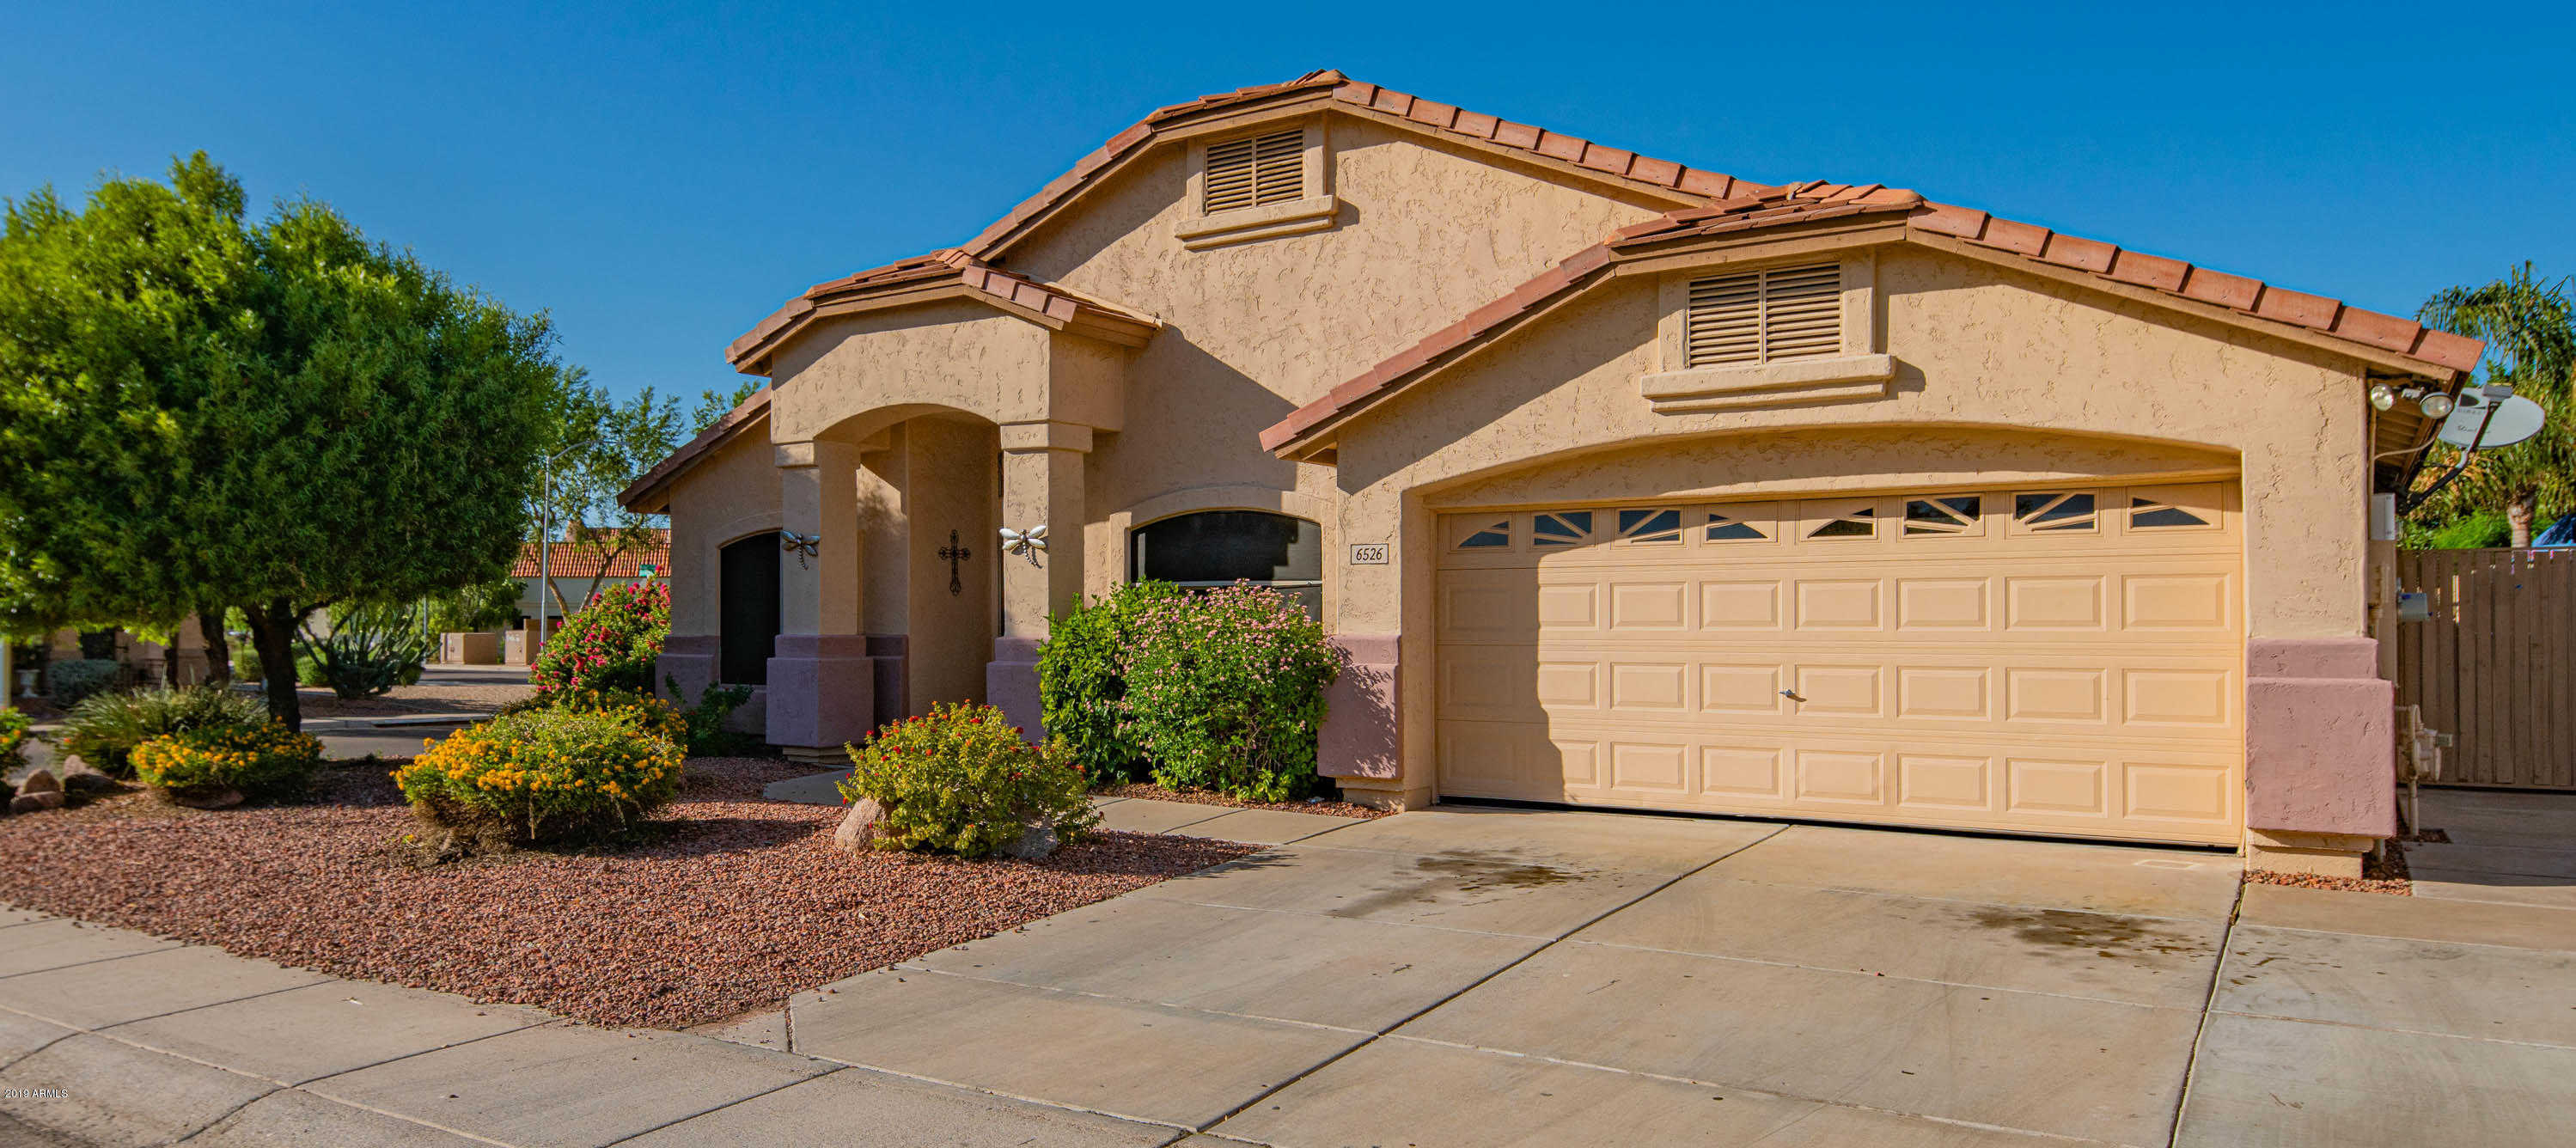 $405,000 - 4Br/2Ba - Home for Sale in Highlands At Arrowhead Ranch 1, Glendale